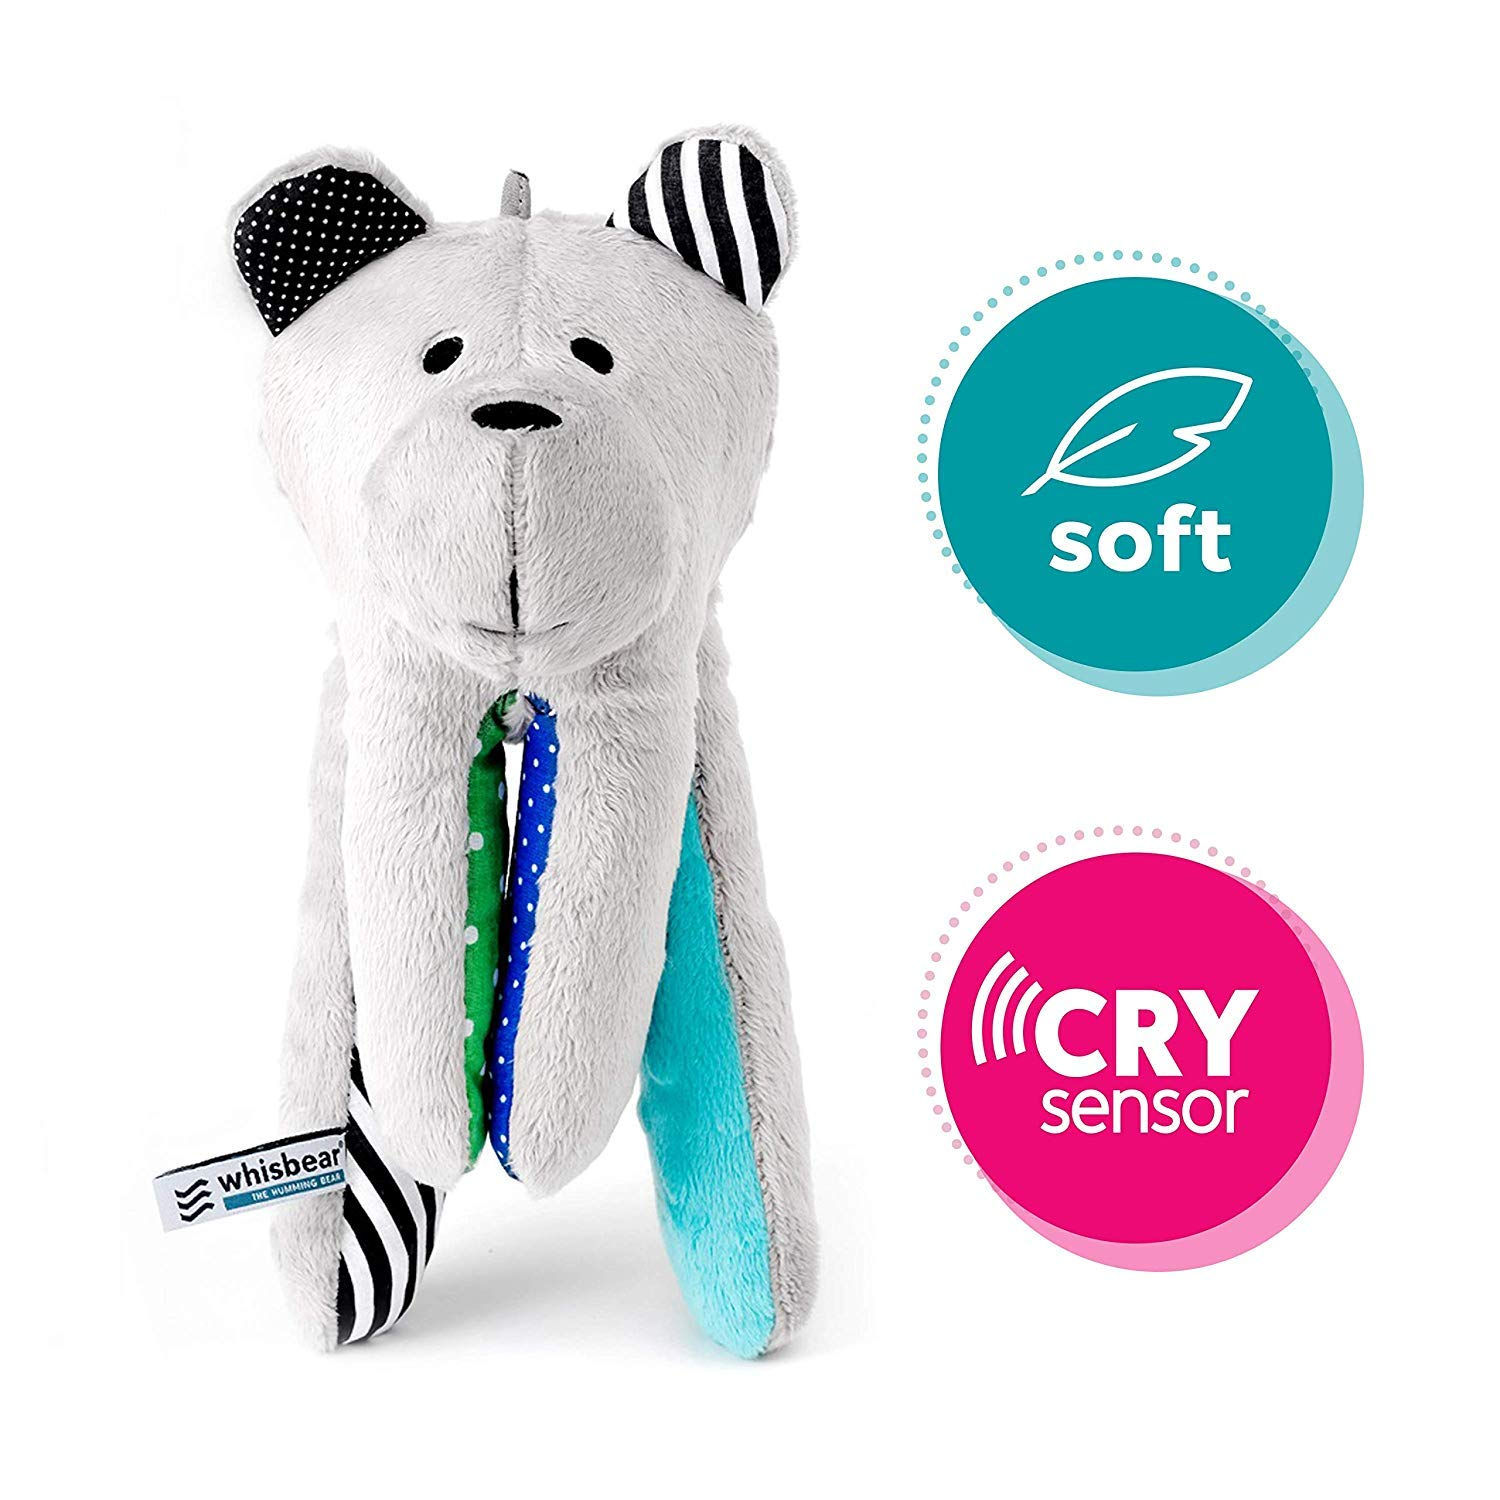 Helps Babies Fall Asleep with a Calming Sound Turquoise Safe Teddy Bear Whisbear The Humming Bear Sleep Soother Sensory Toy for Babies reacts to Babies/' Crying